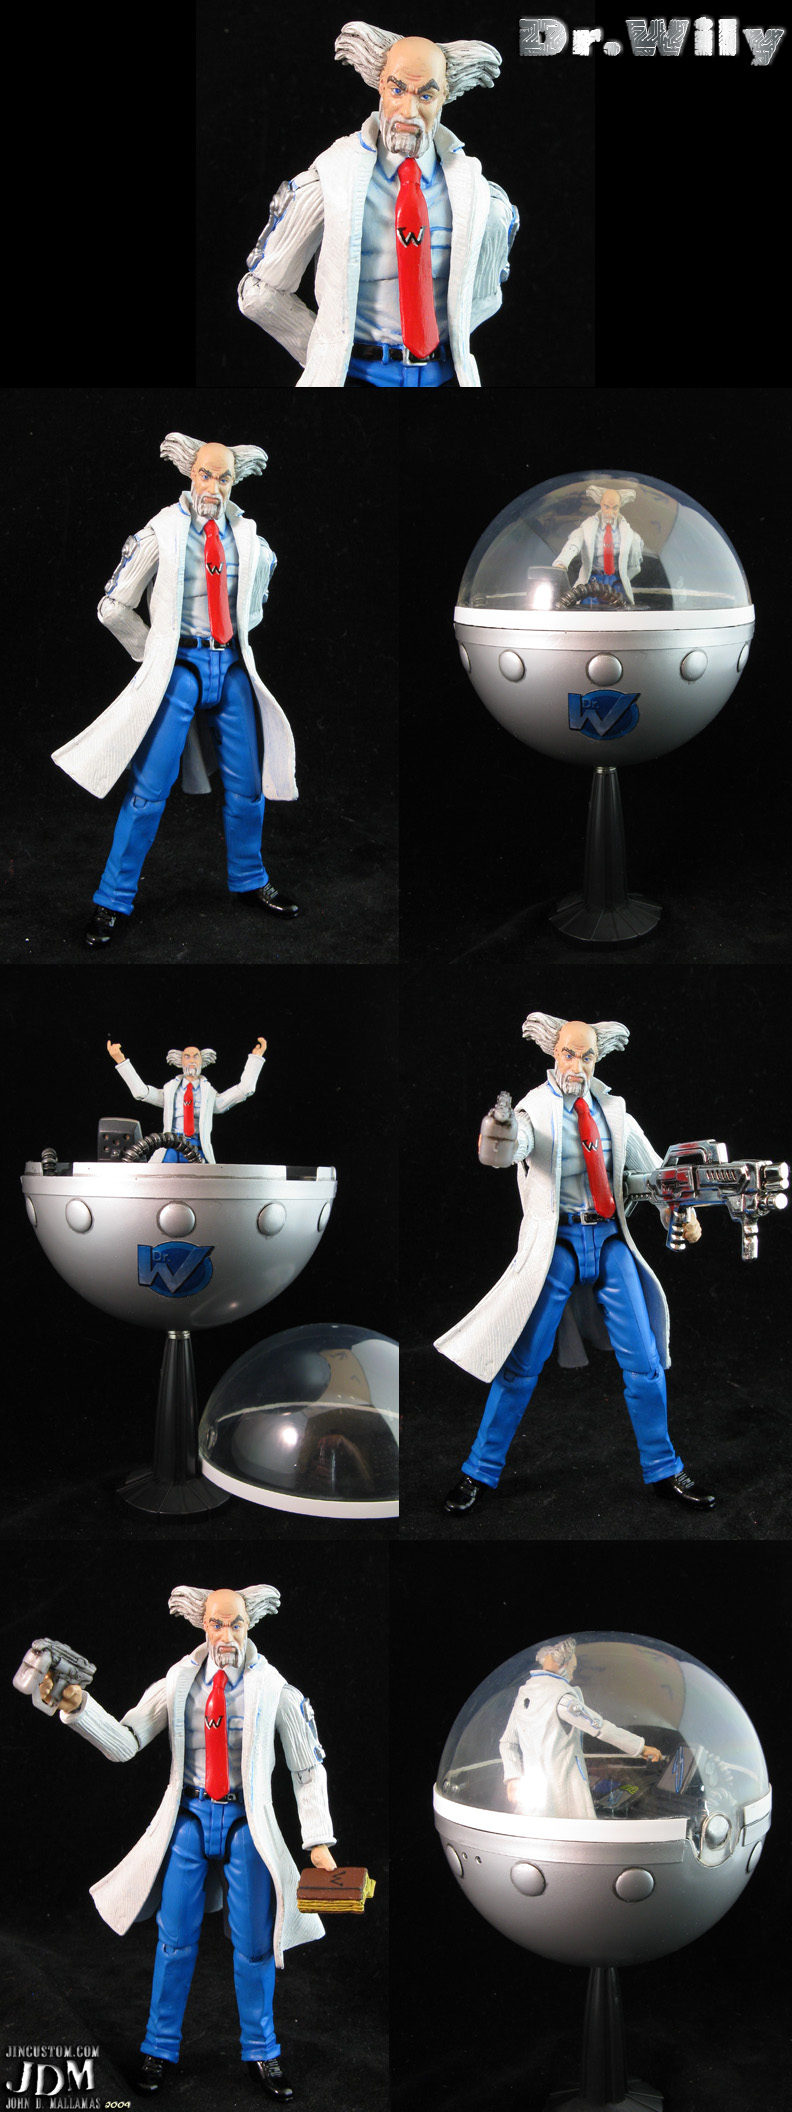 Dr Wily